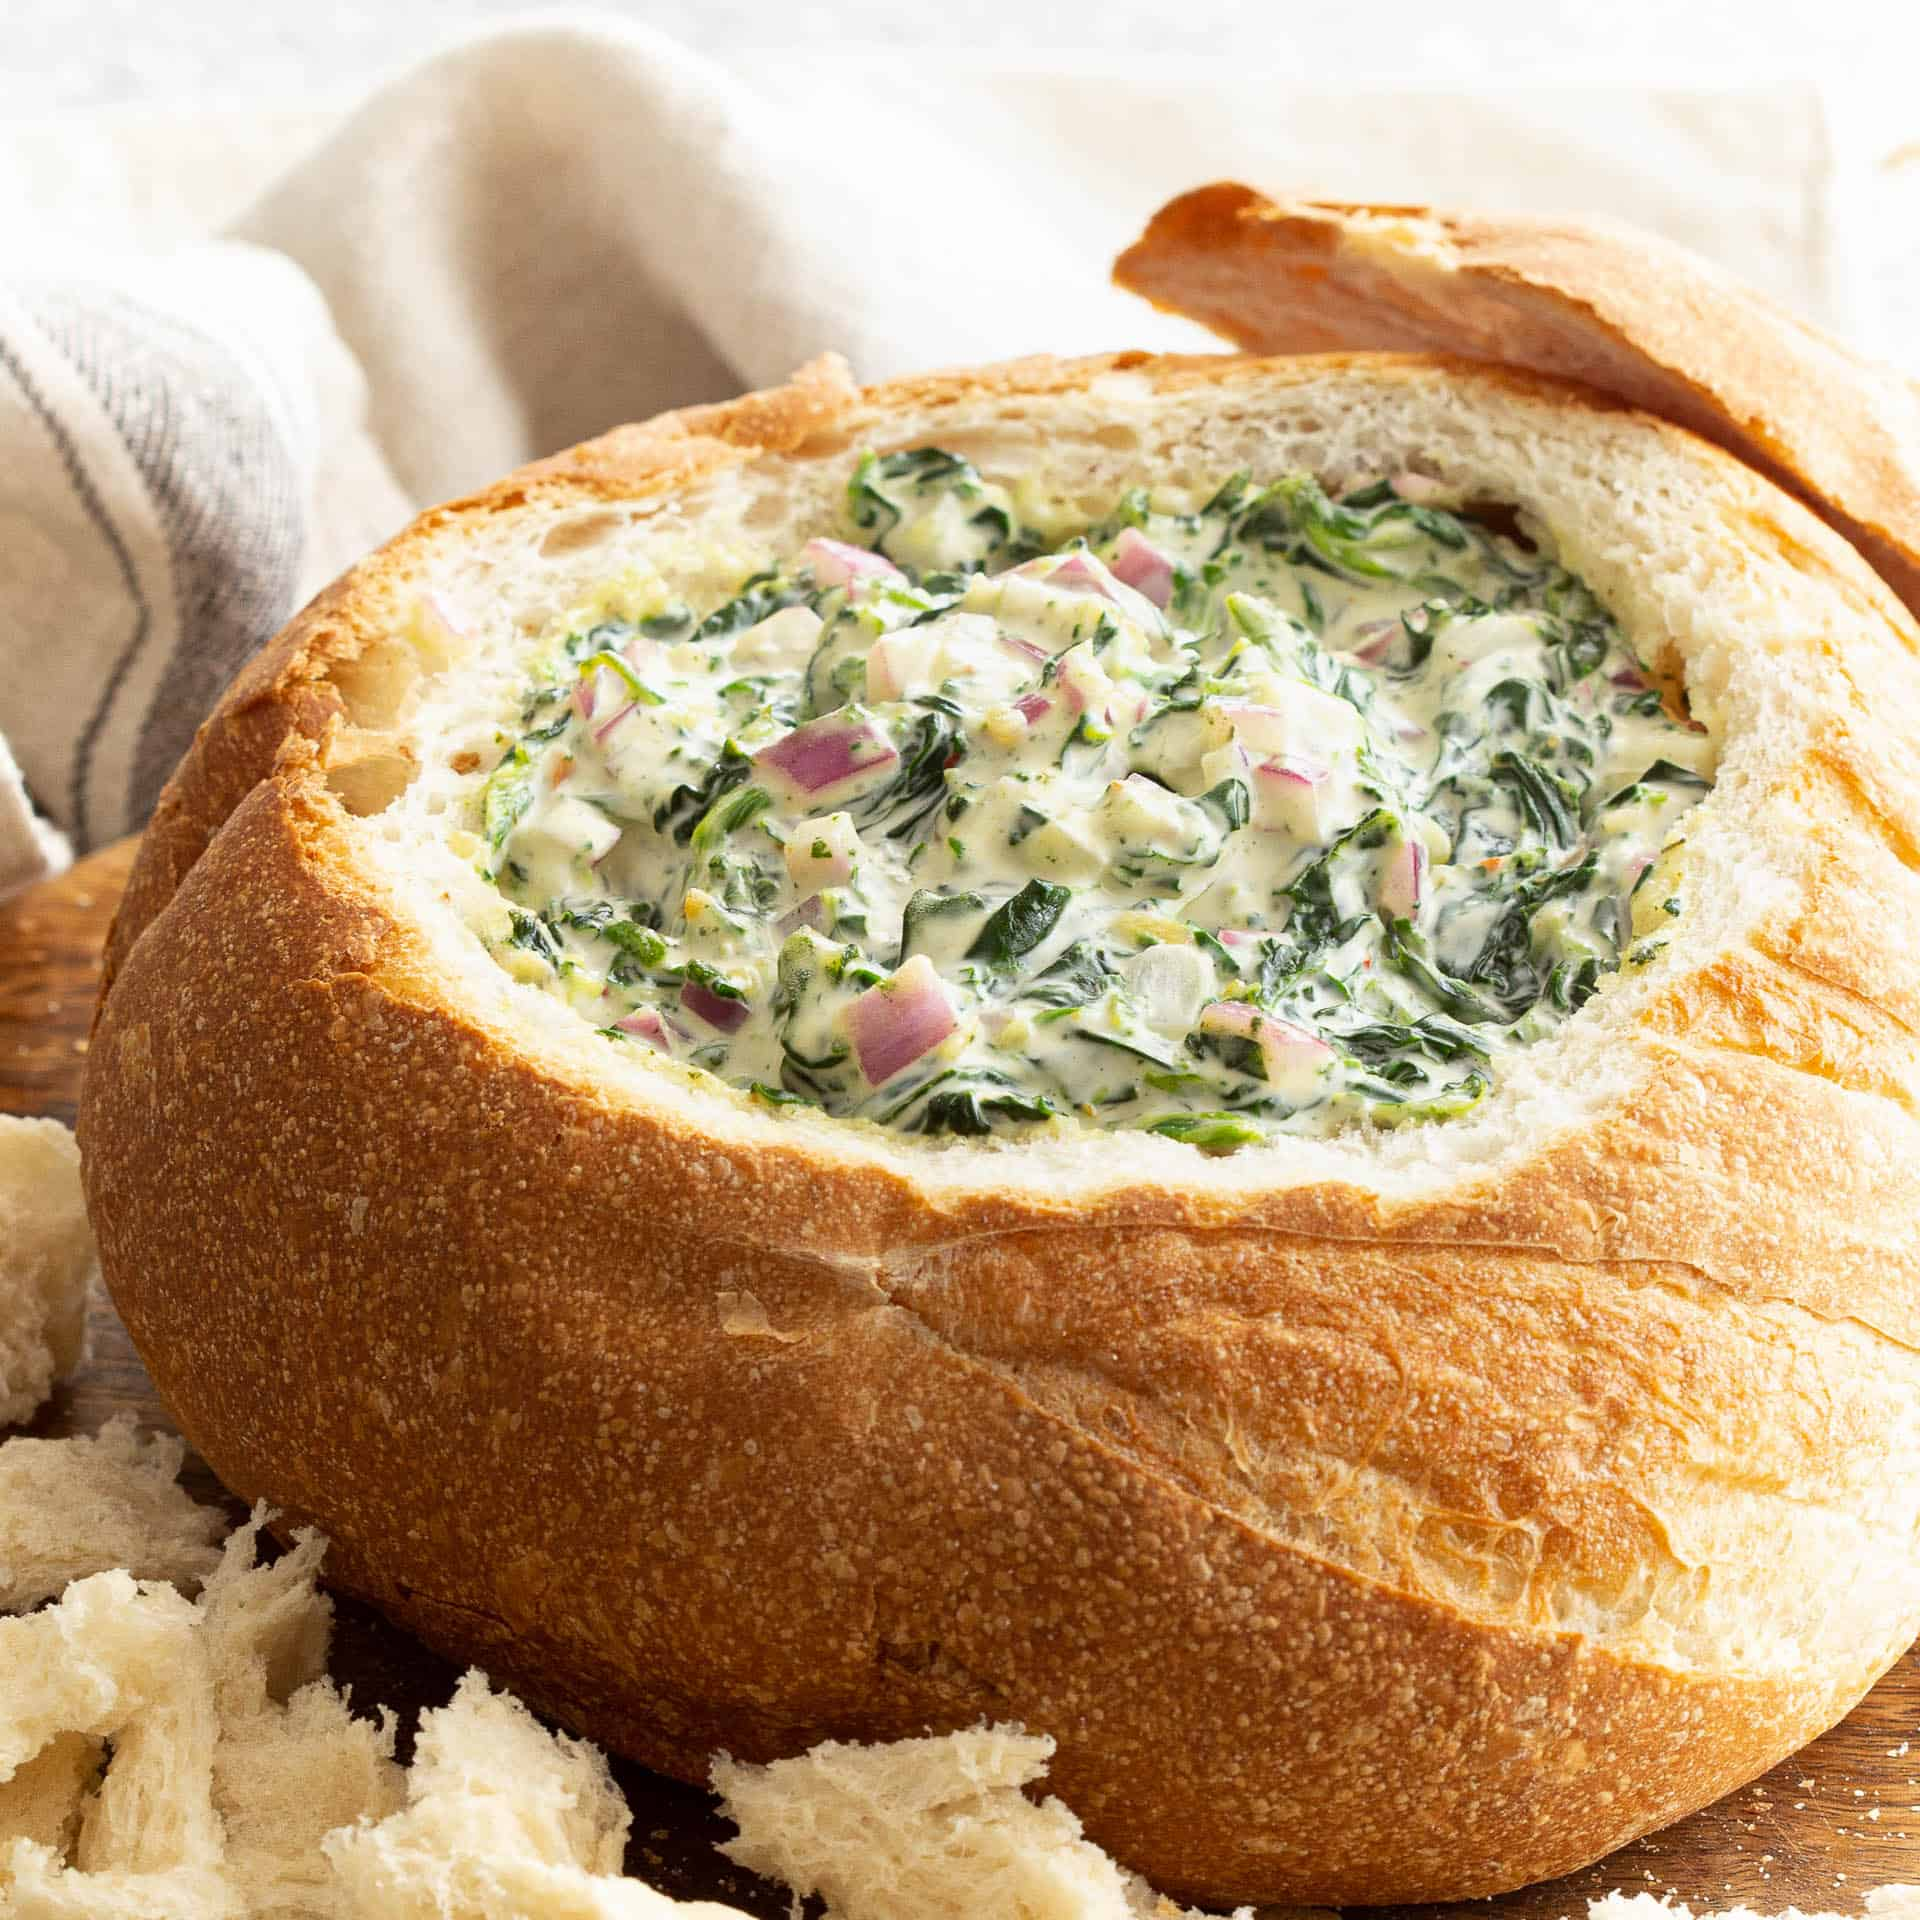 Spinach Cob Loaf with top crust removed.